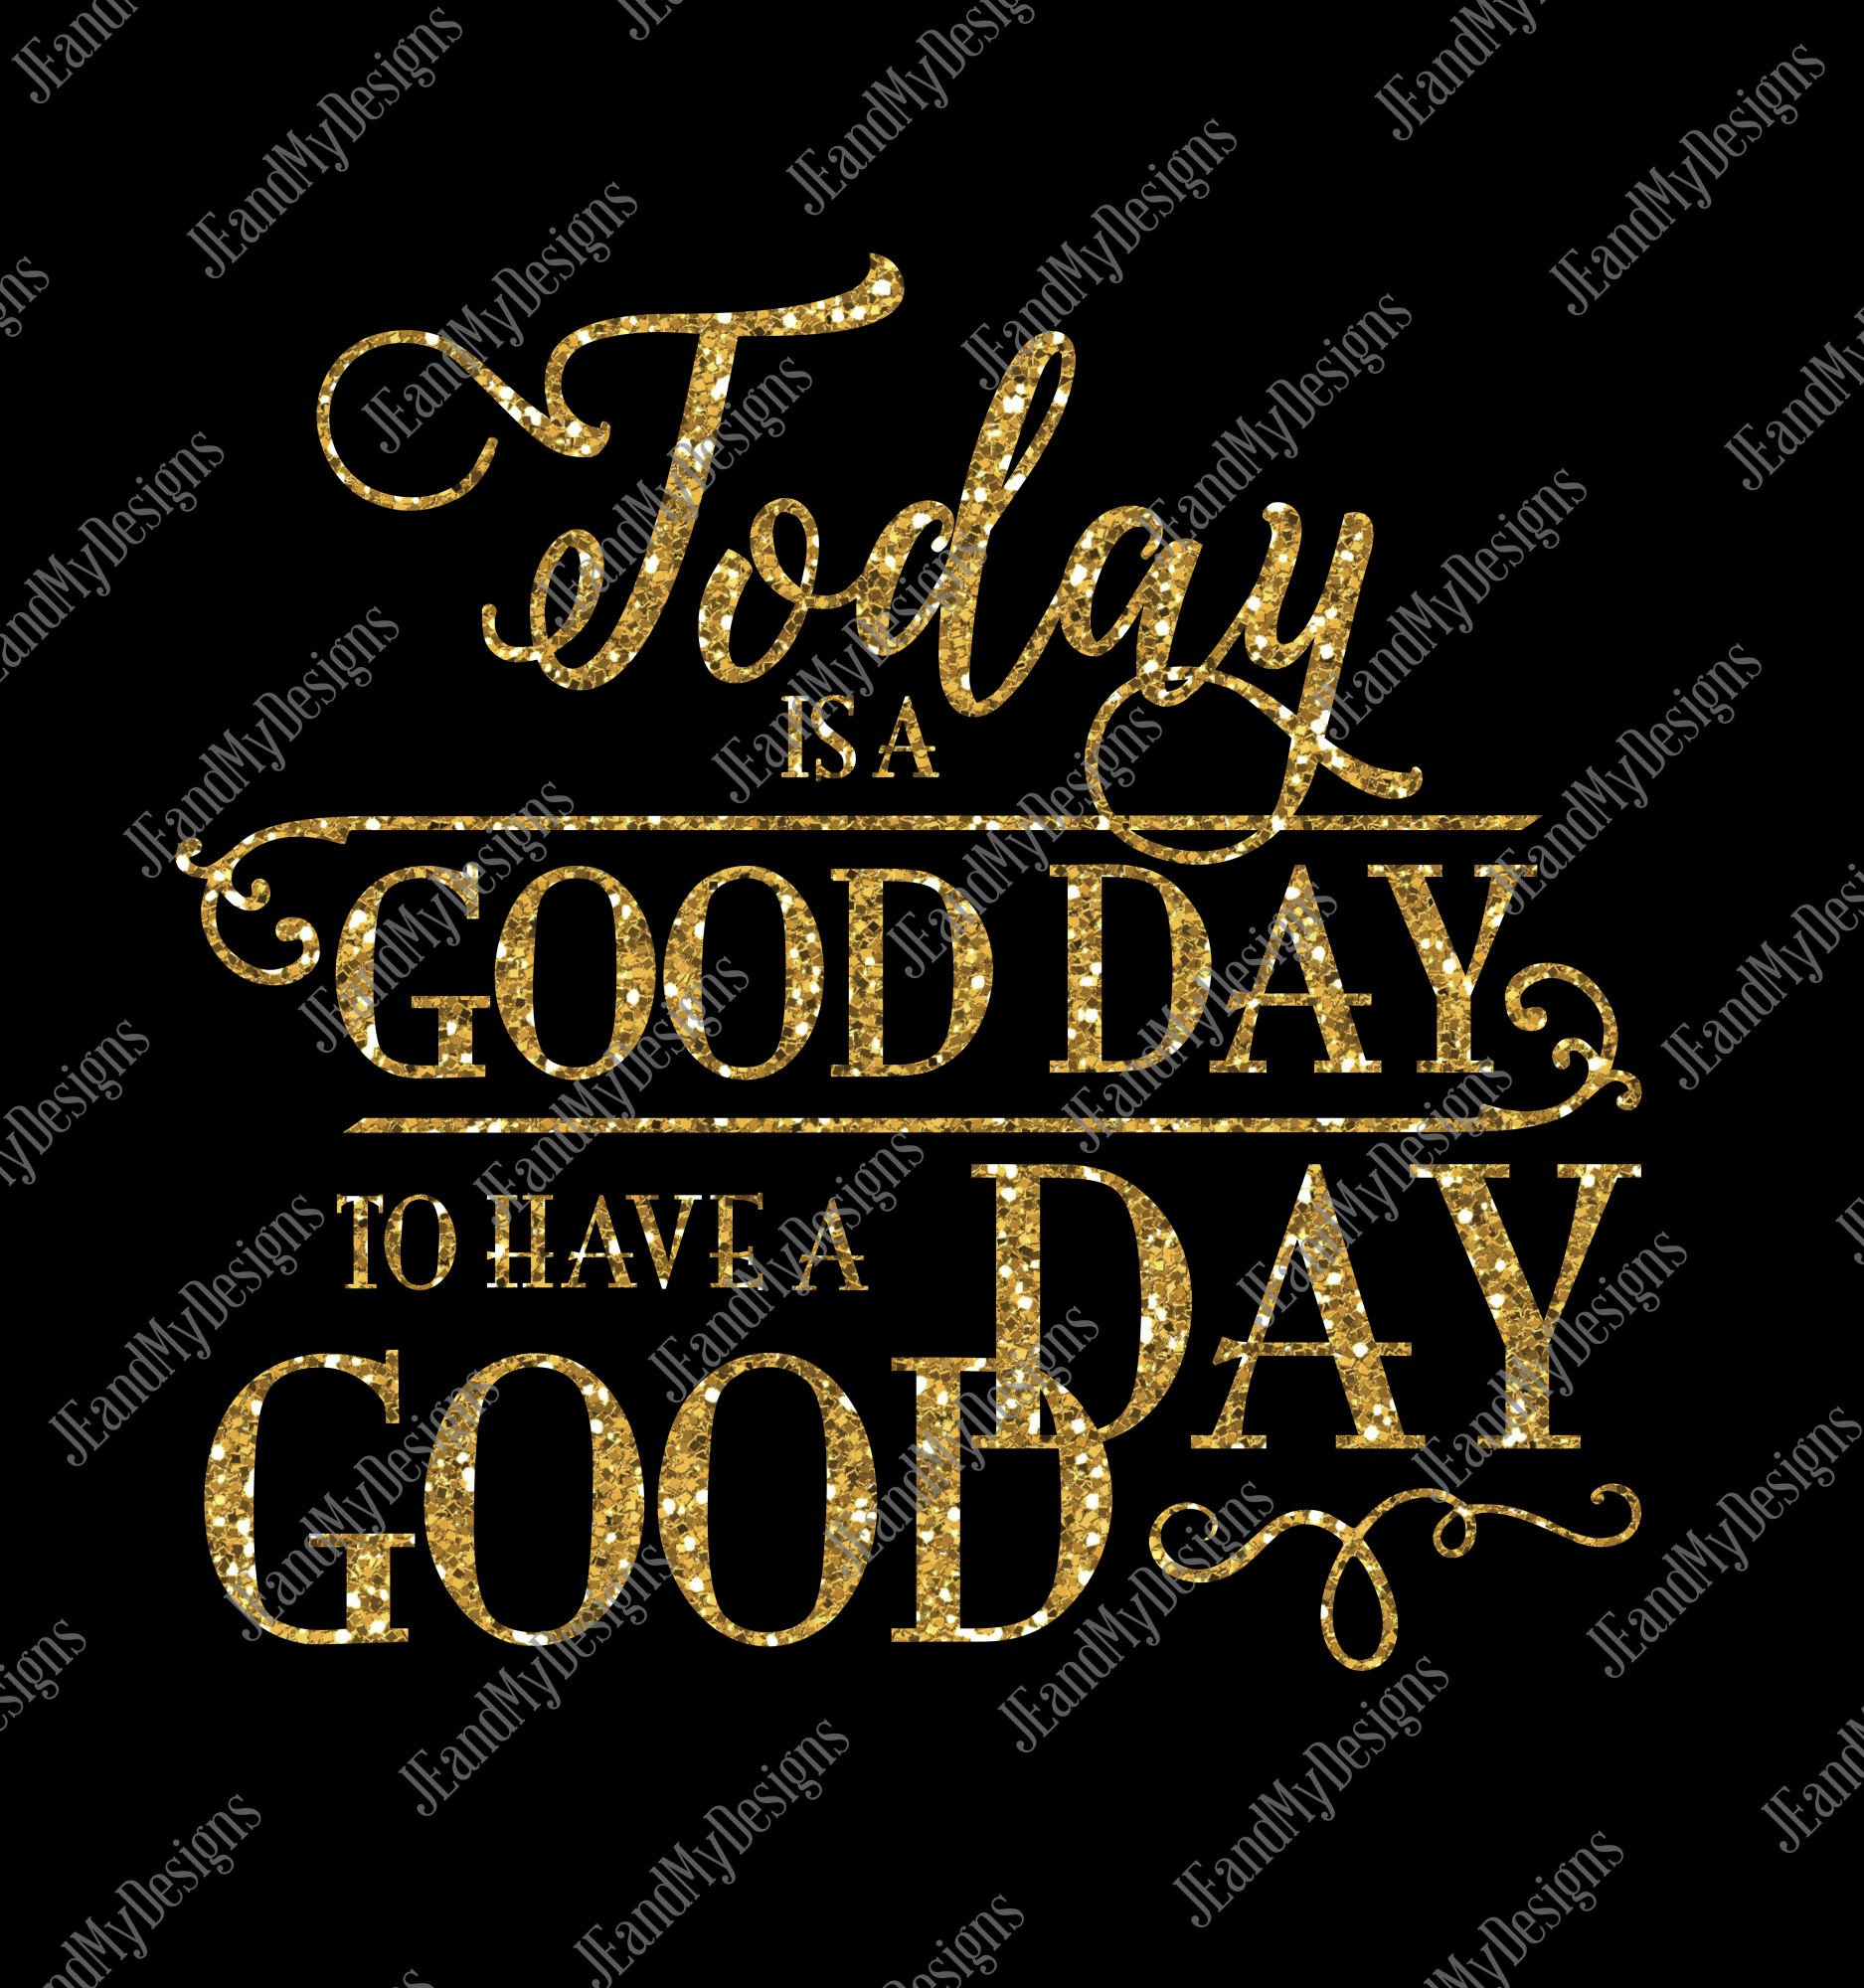 Today is a Good Day to Have a Good Day SVG, JPEG, PNG, EPS, DXF example image 2